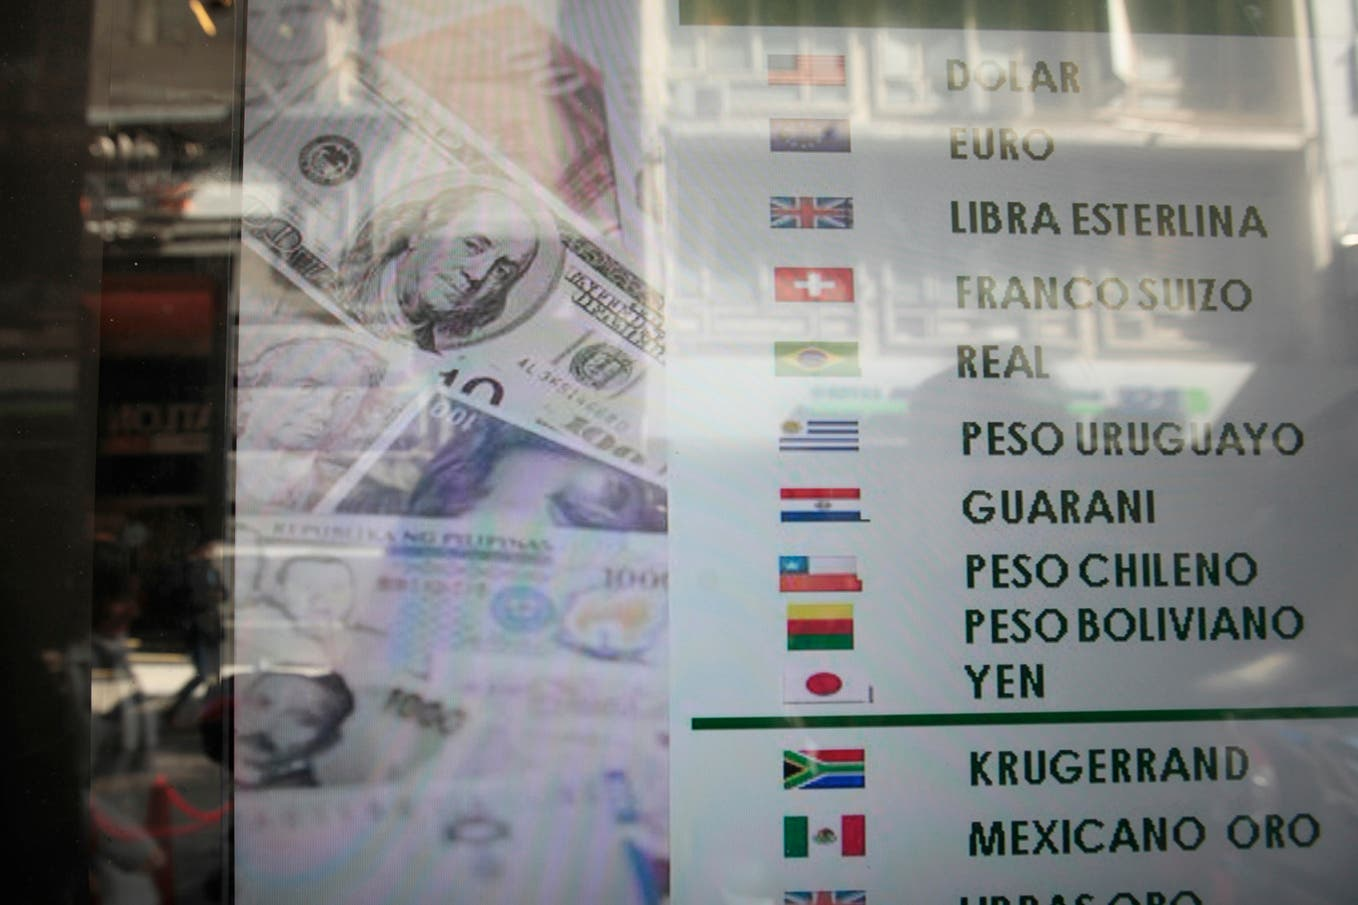 The Dollar Today It Works With A Slight Increase And Central Bank Bought 75 Million